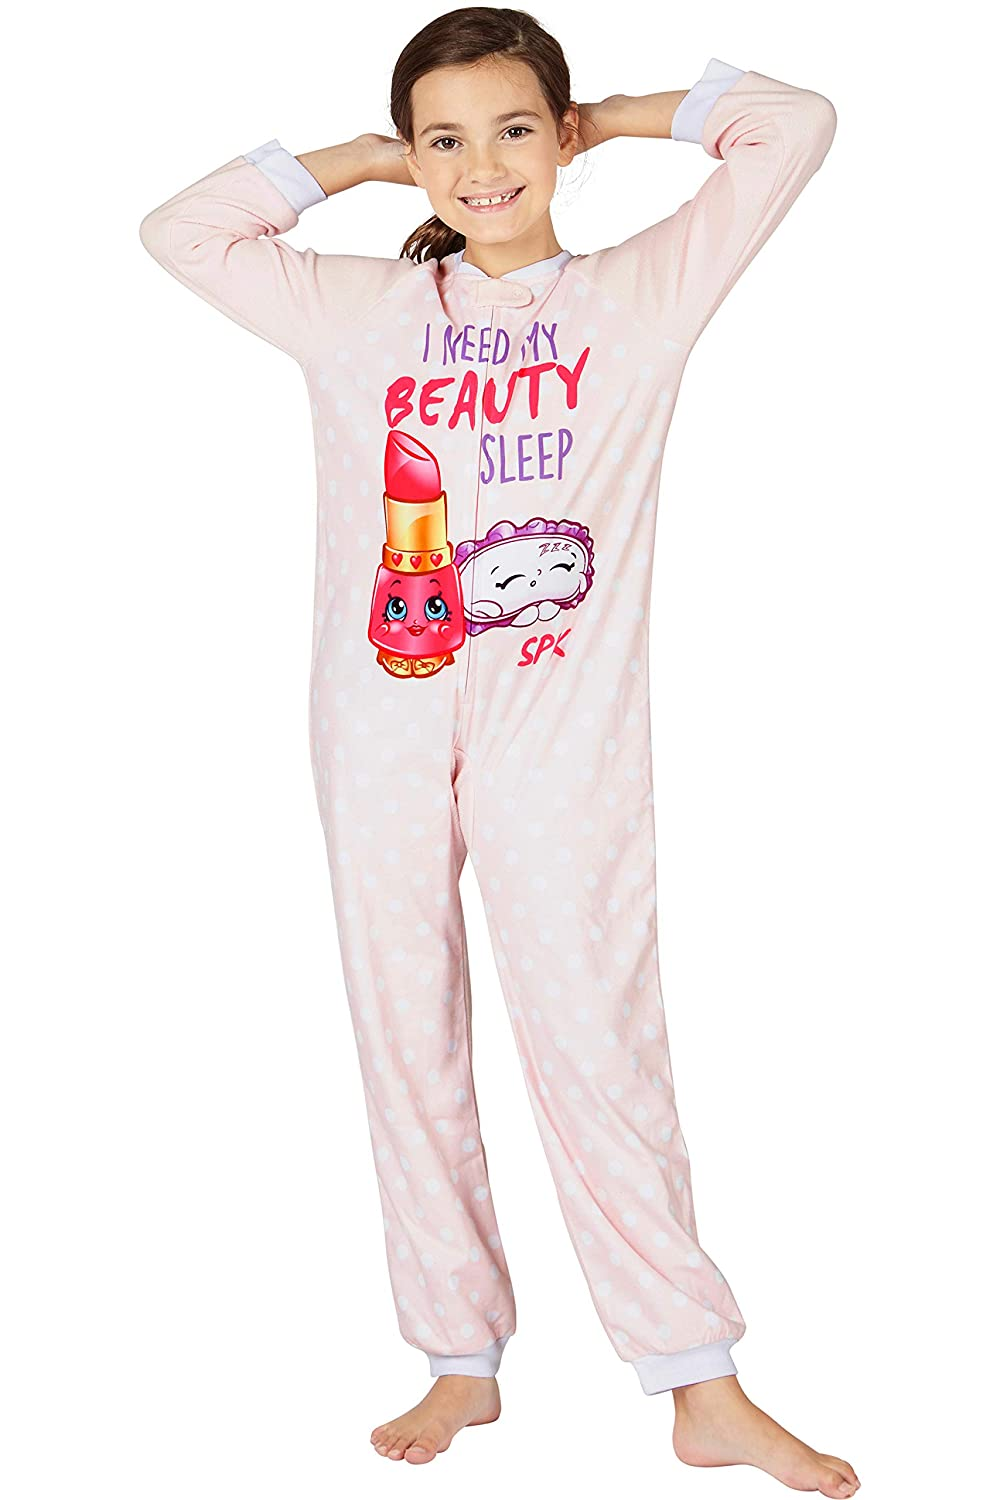 bc412608c2ef Amazon.com  Shopkins  Beauty Sleep  Footless One Piece Pajama Set ...